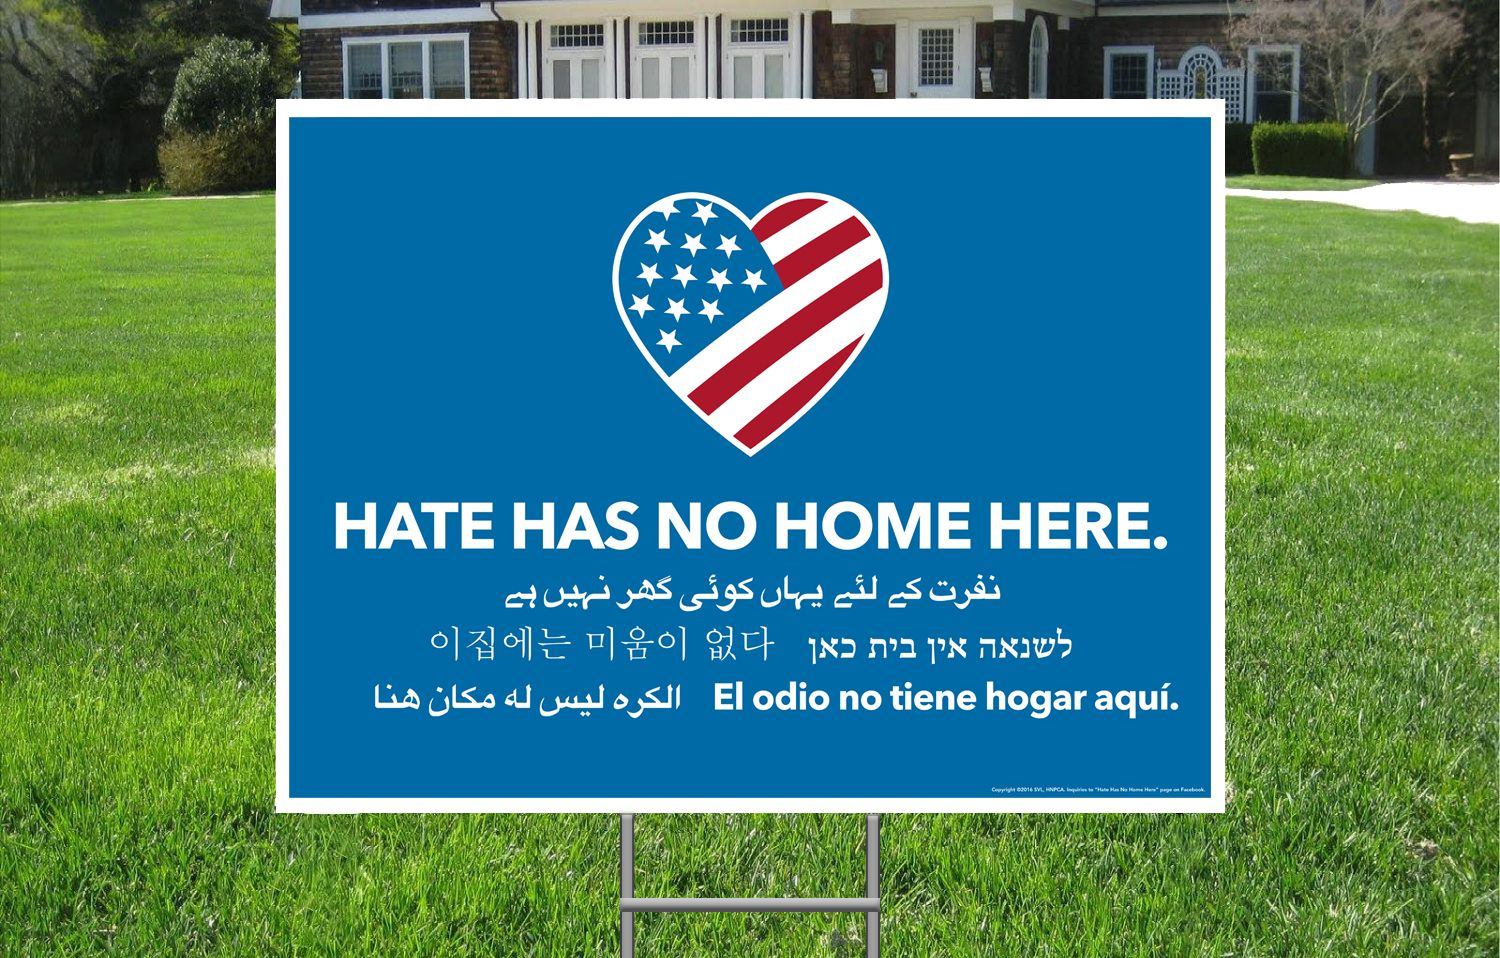 Hate Has No Home Here Yard Signs Car Refrigerator Magnets Window Posters Buttons Stickers Window Decals